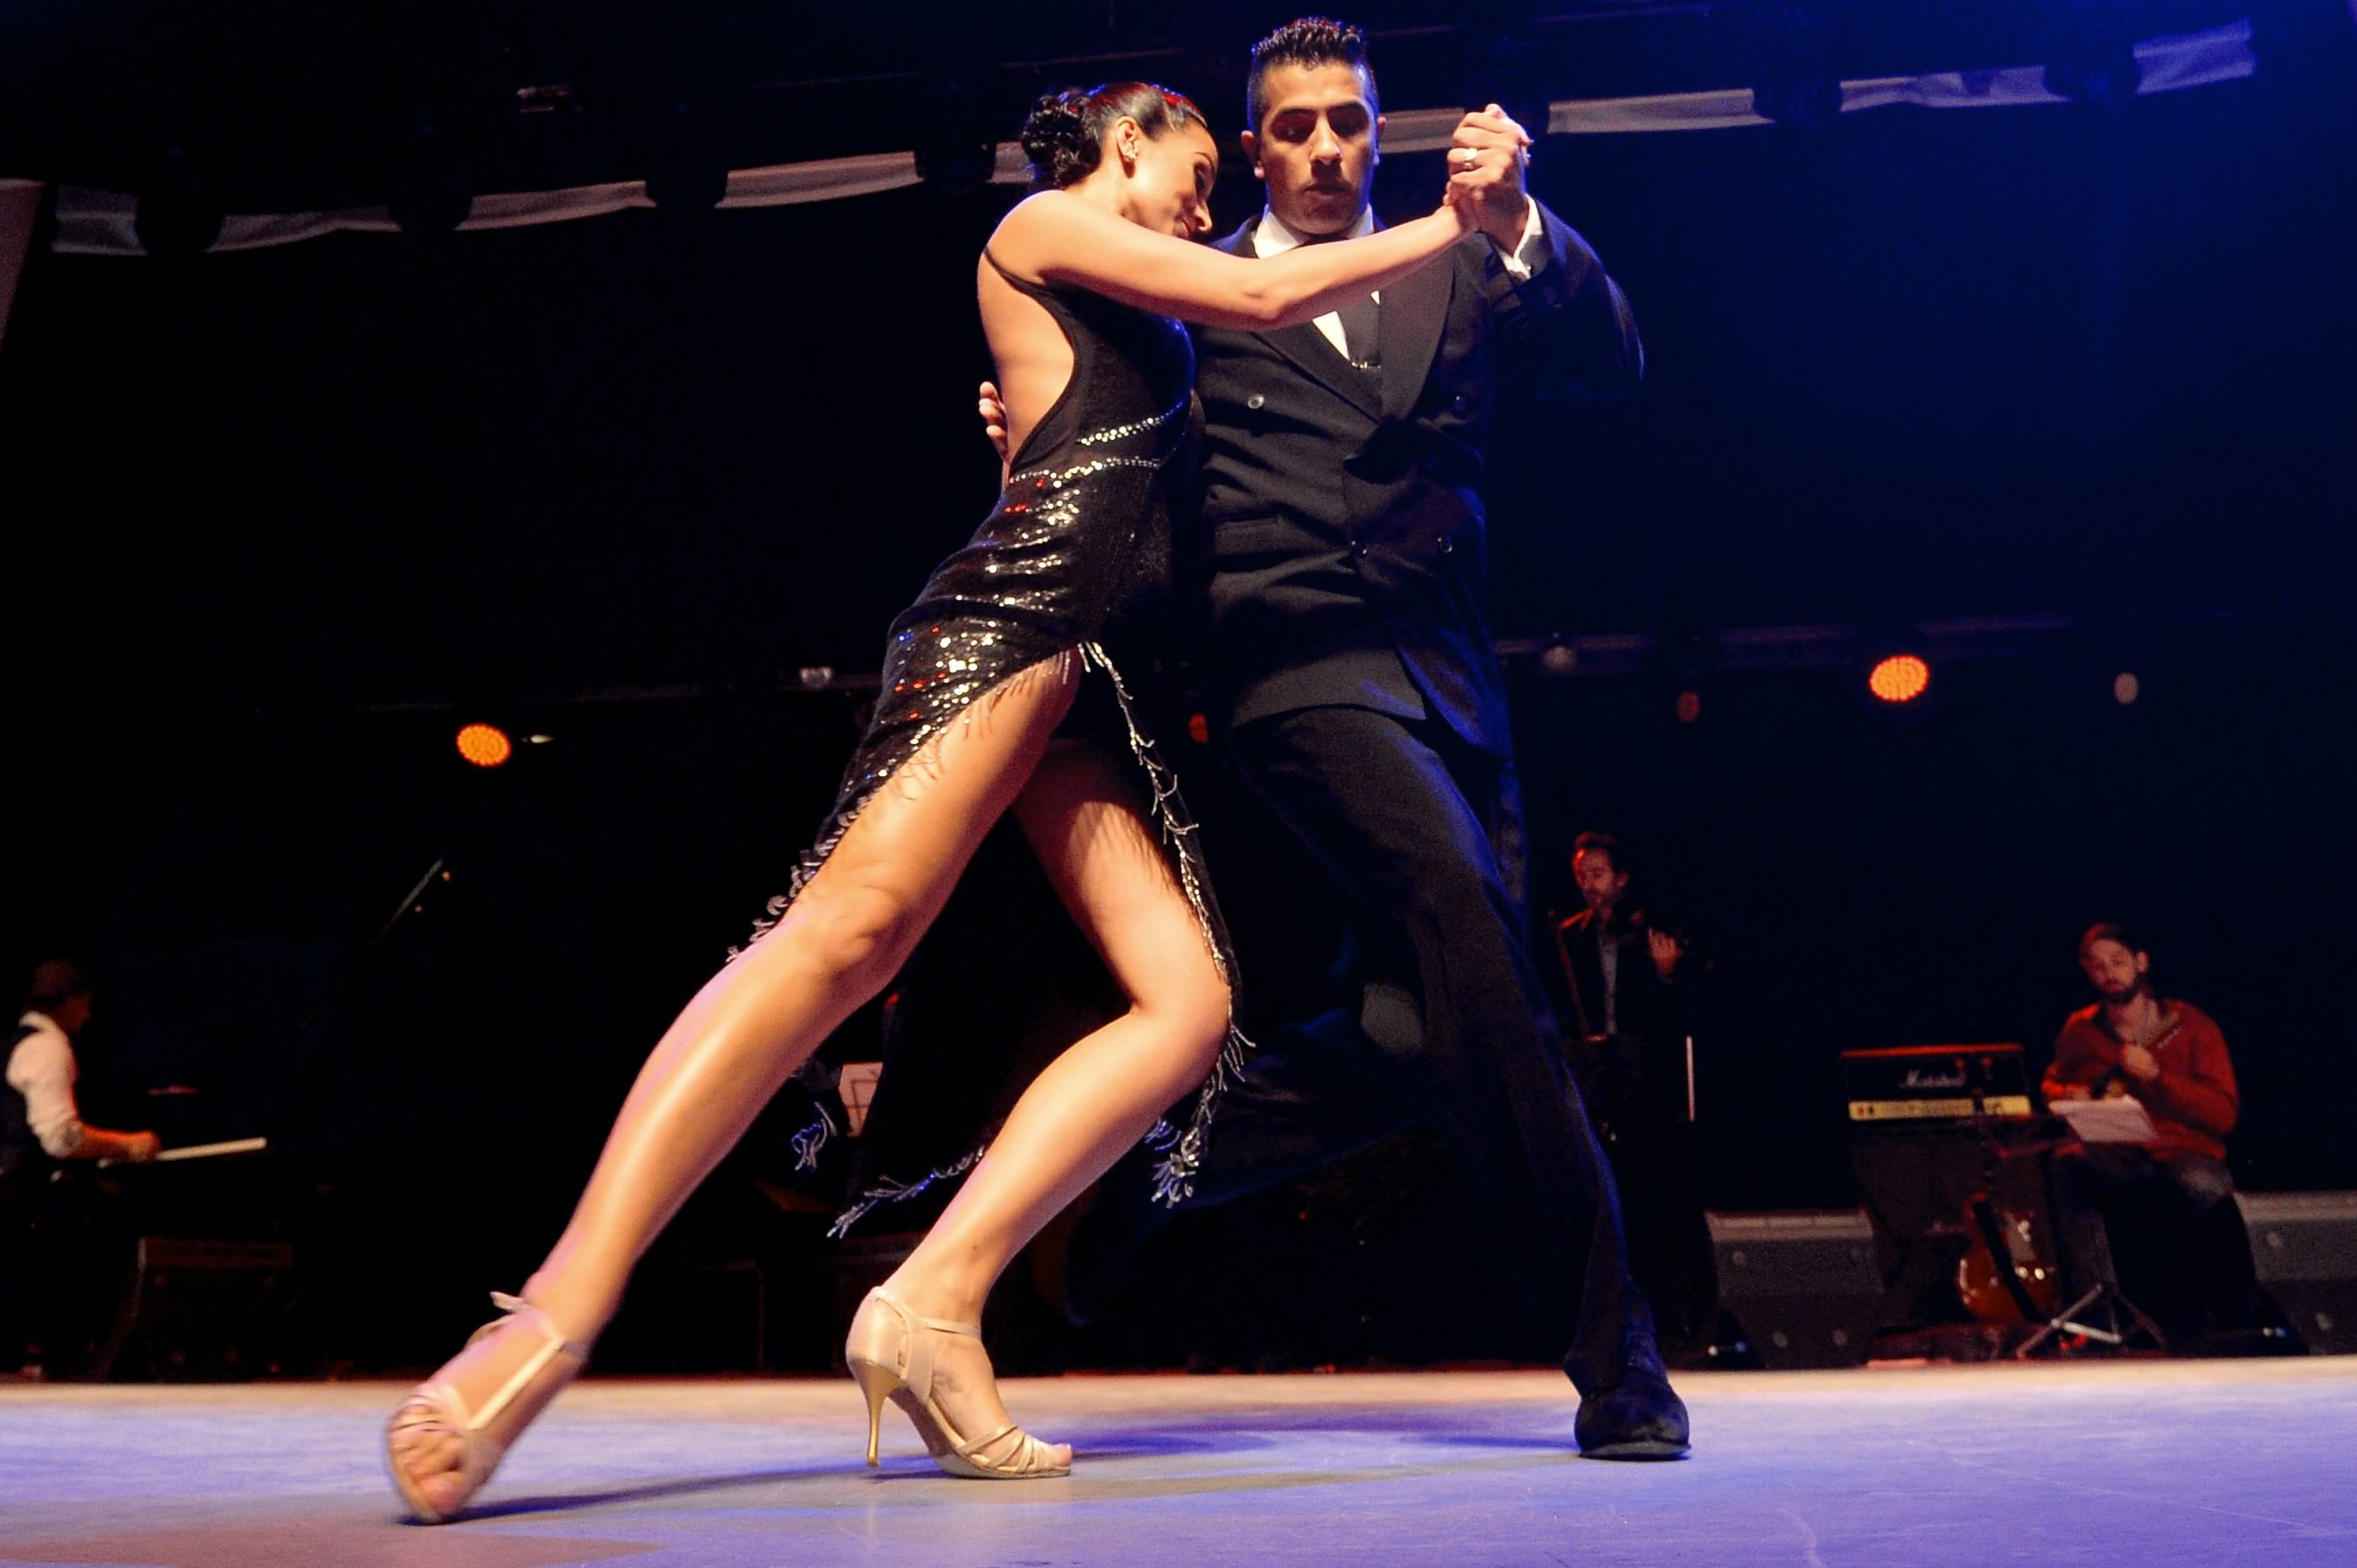 The stage tango is known for its marked virtuosity and acrobatic moves.